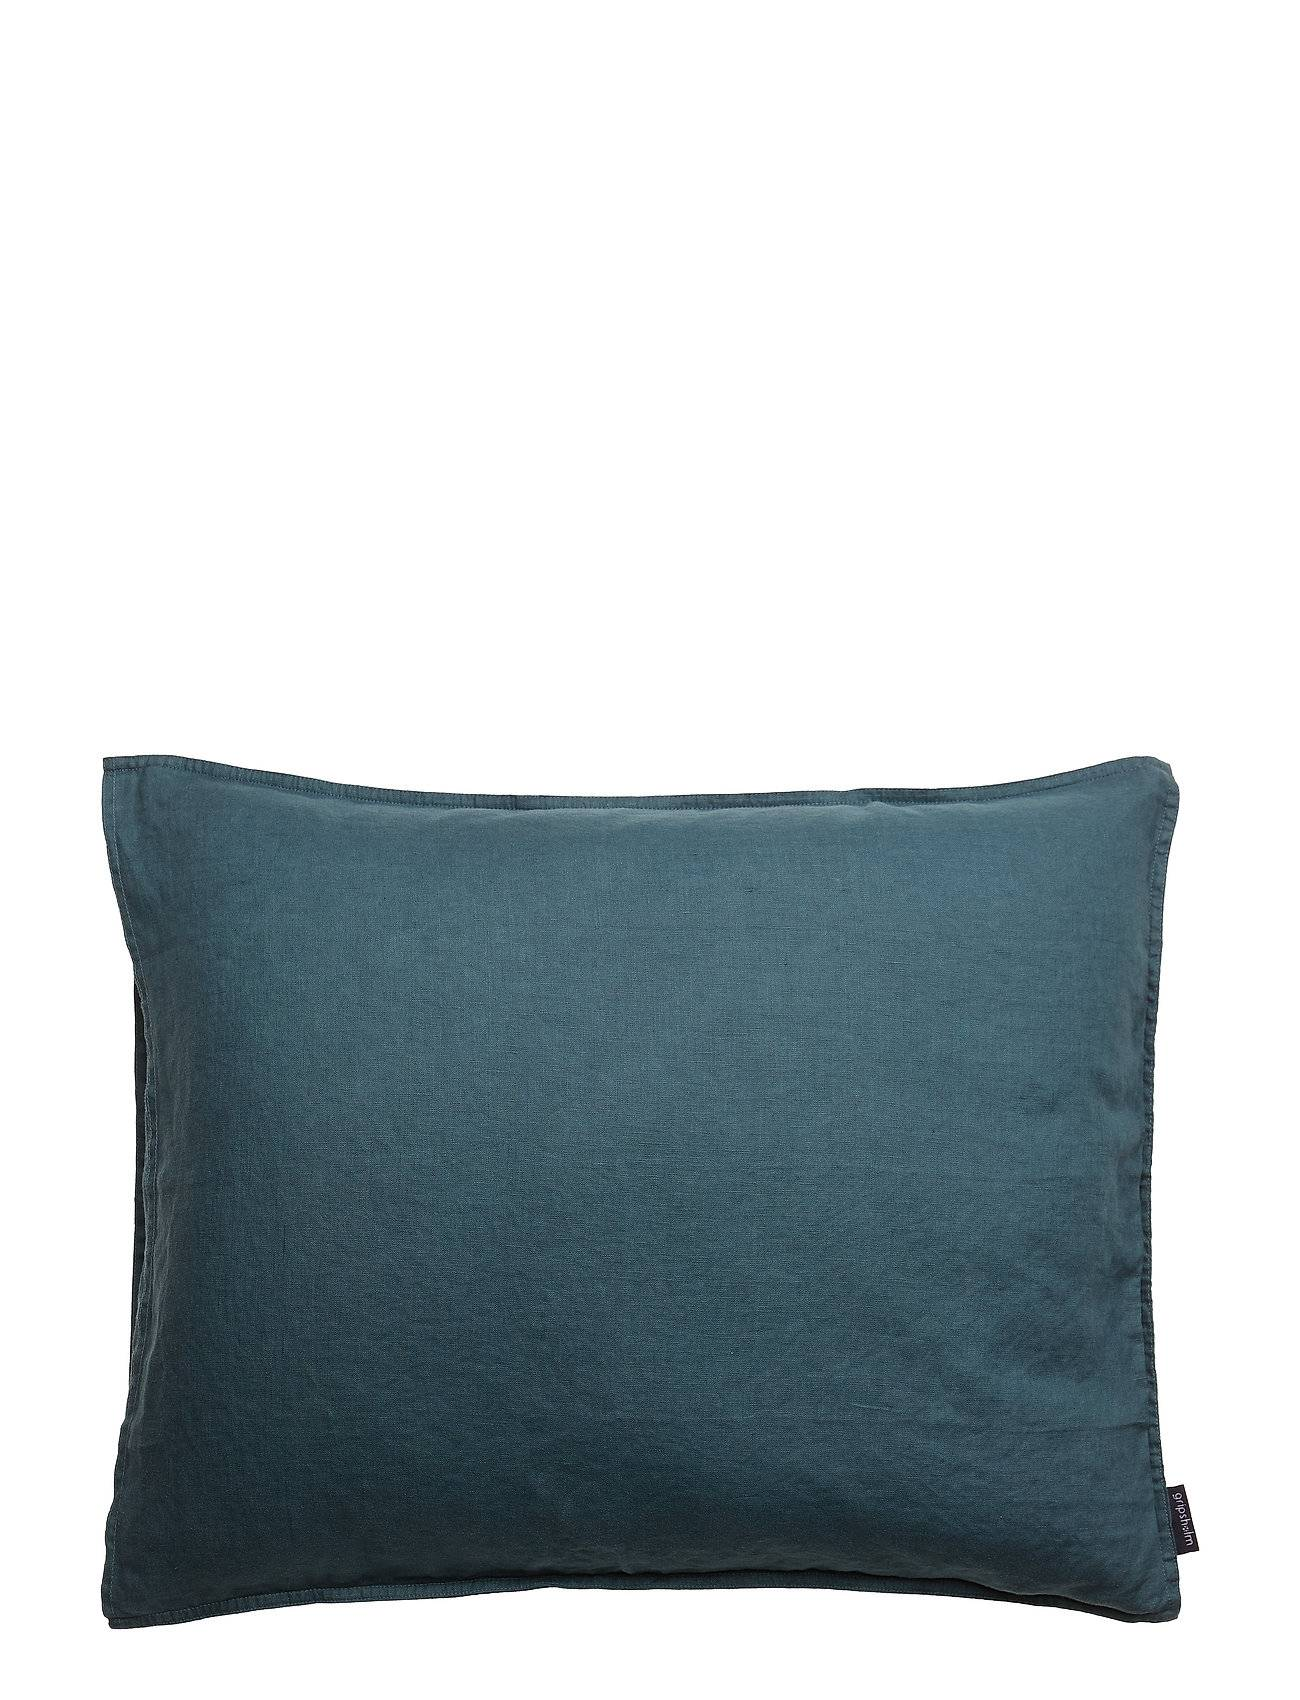 Gripsholm Pillowcase Washed Linen Home Bedroom Bedding Pillowcases Sininen Gripsholm